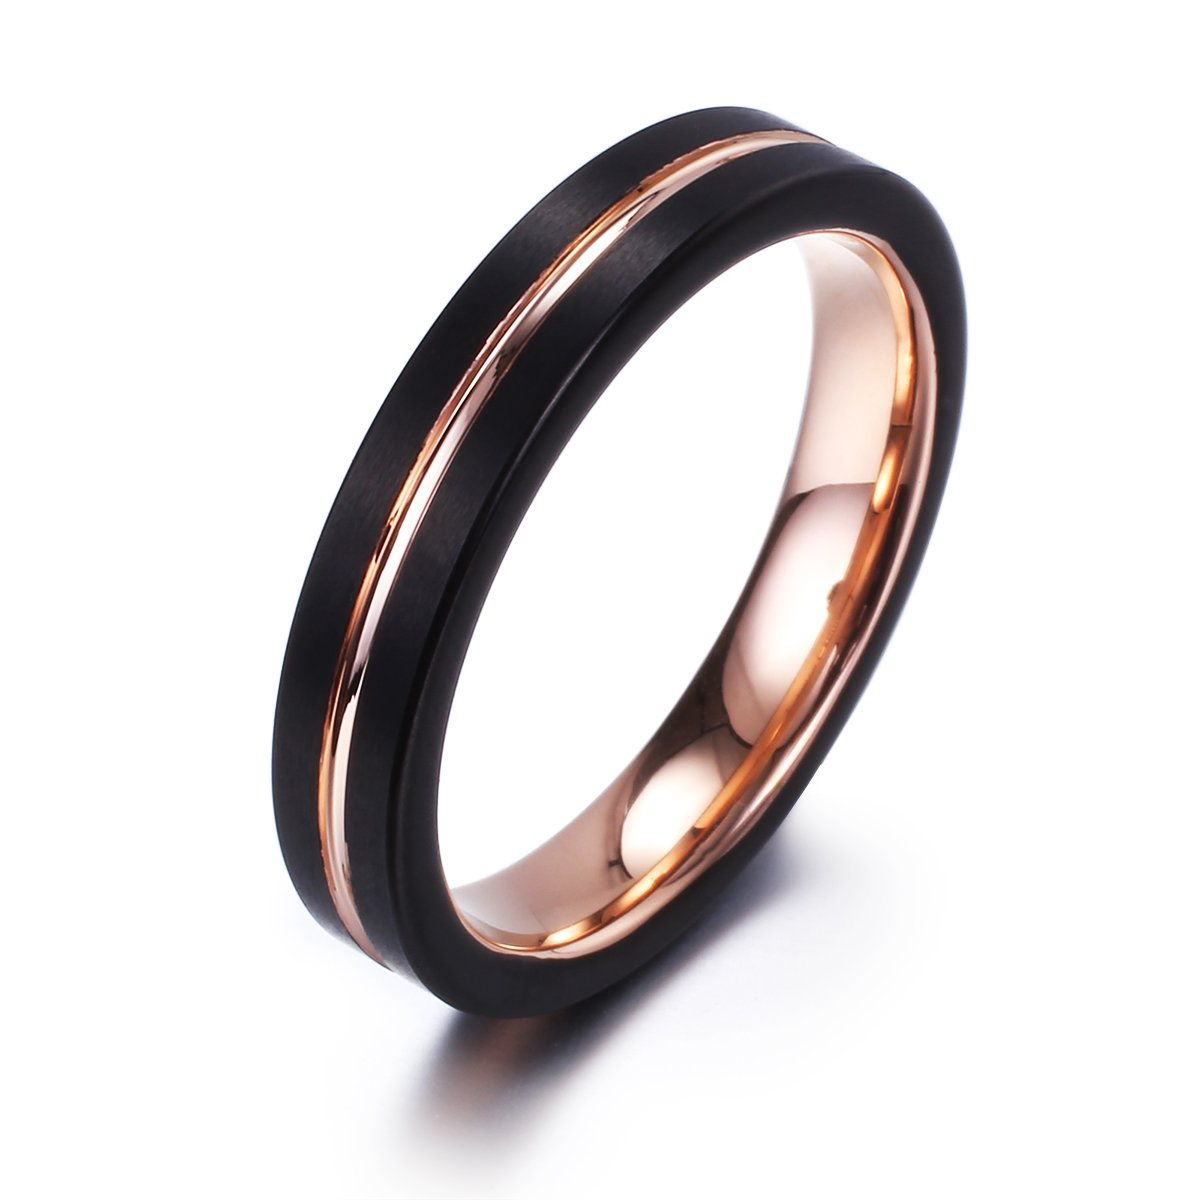 NaNa Chic Jewelry 4mm black Rose gold plated tungsten carbide ring for women(7.5)